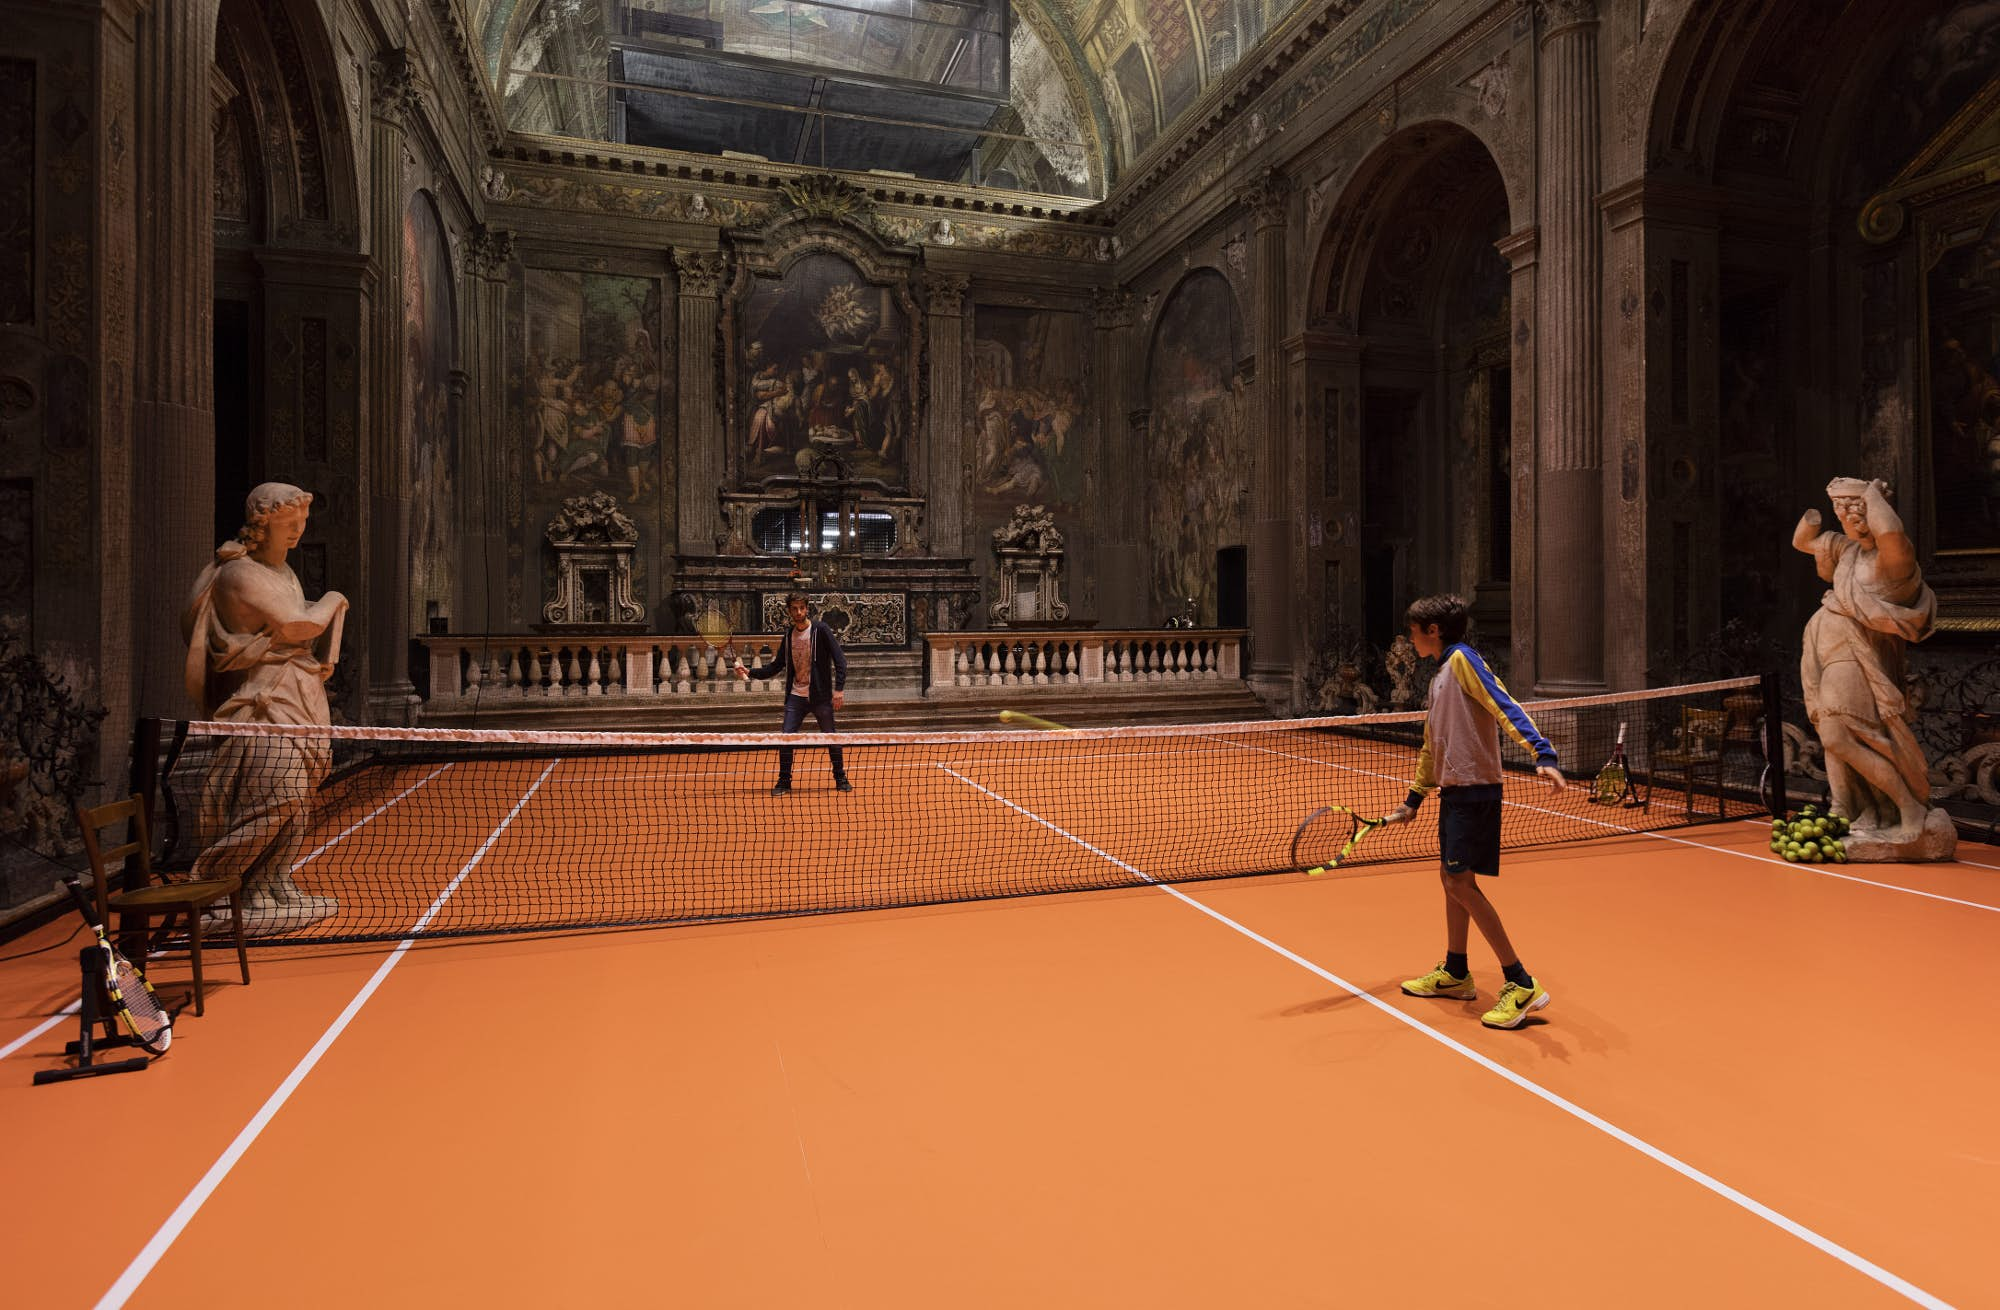 Practice Your Serve At A Tennis Court Inside A 16th Century Church In Milan Lonely Planet